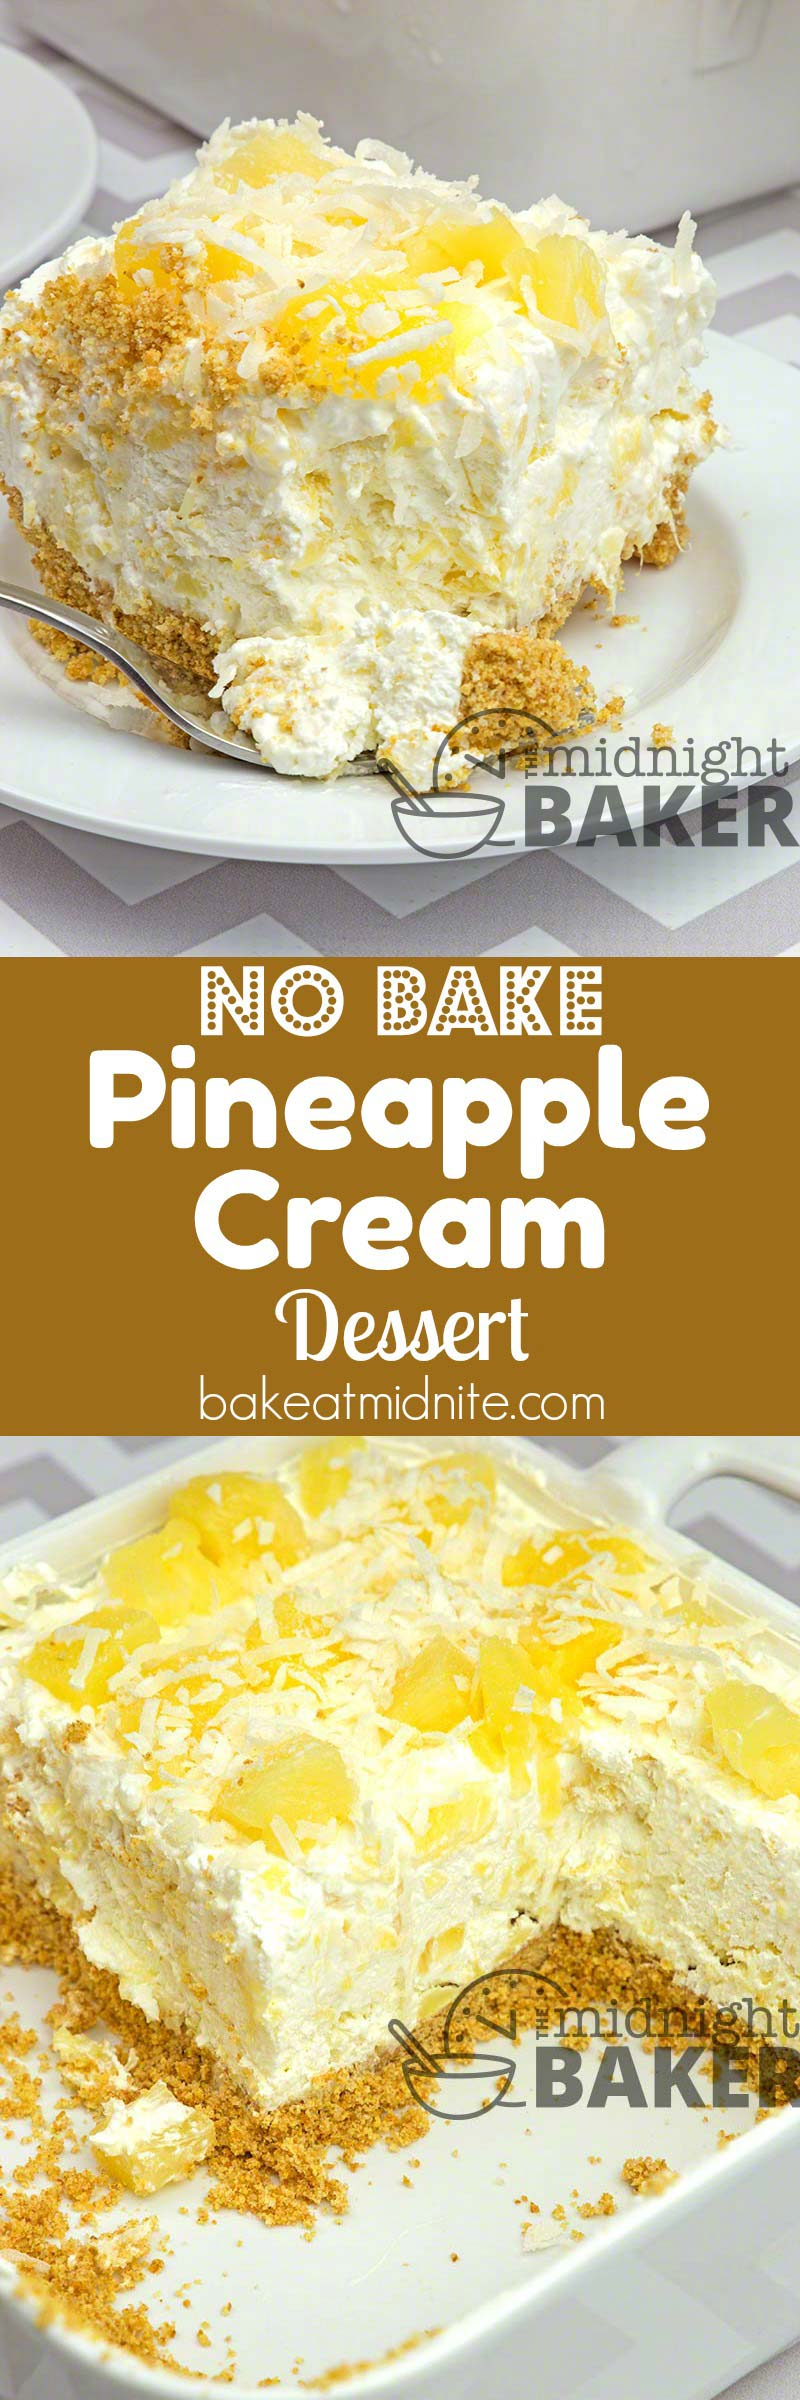 No Bake Pineapple Cream Dessert The Midnight Baker